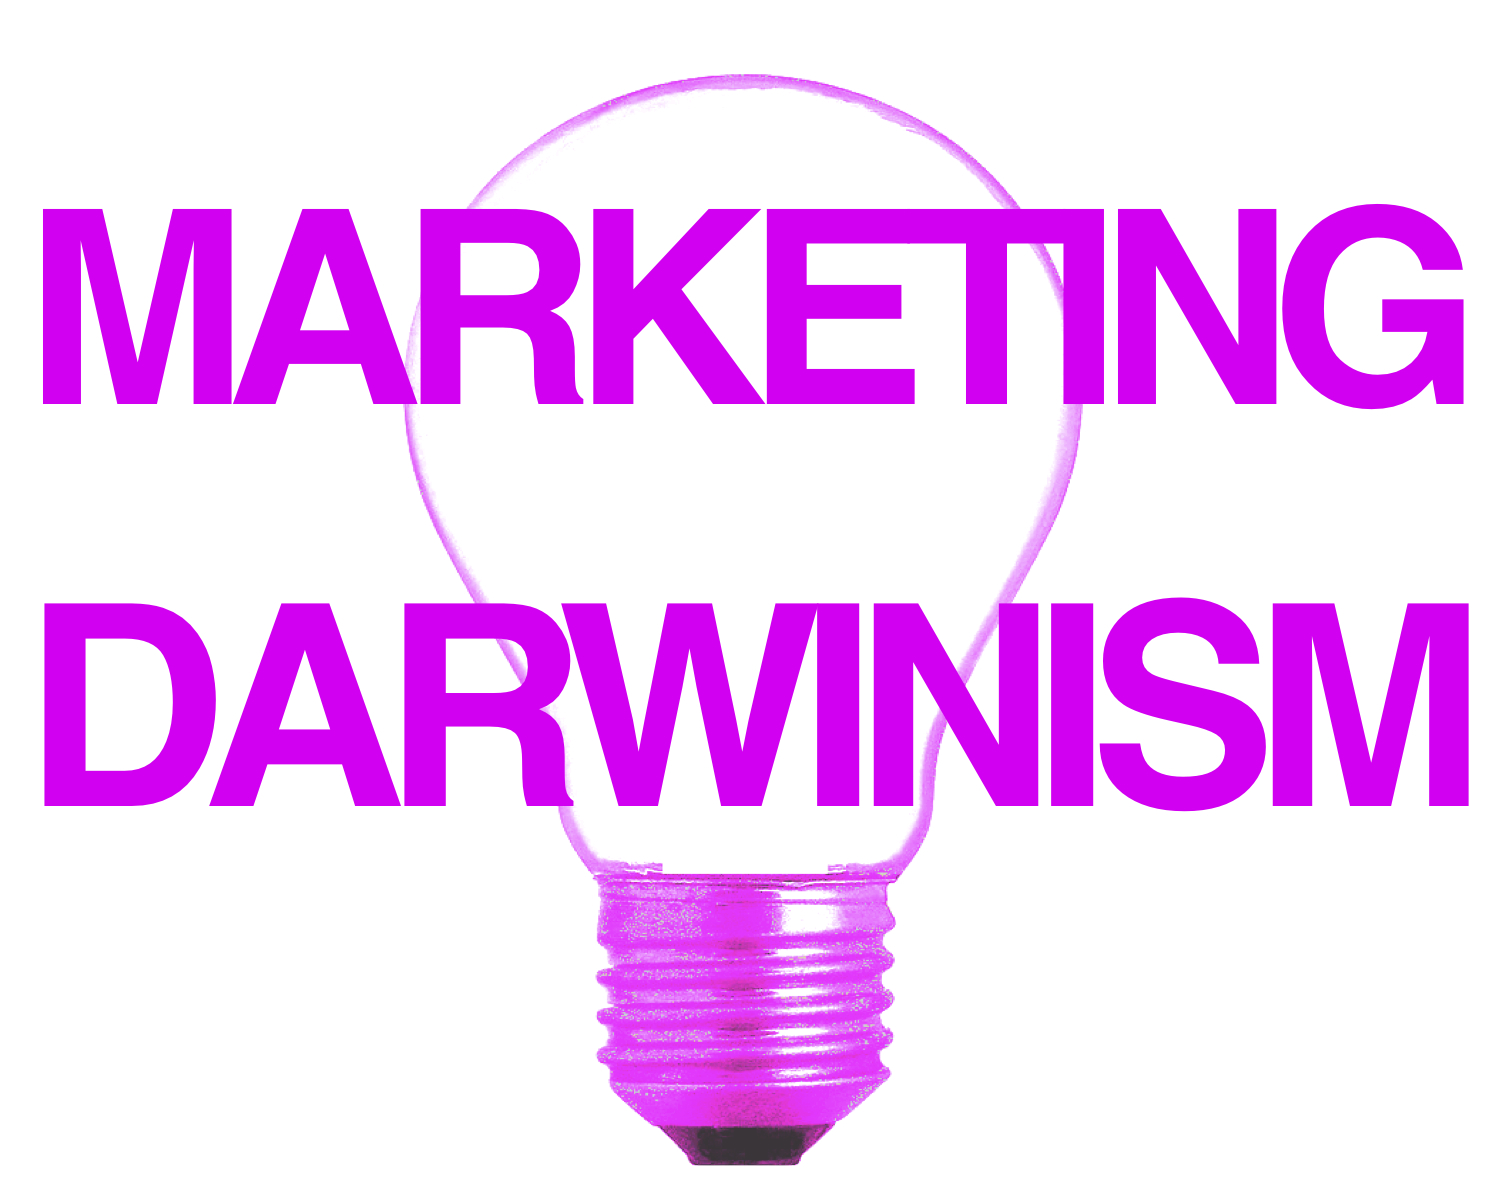 Marketing Darwinism